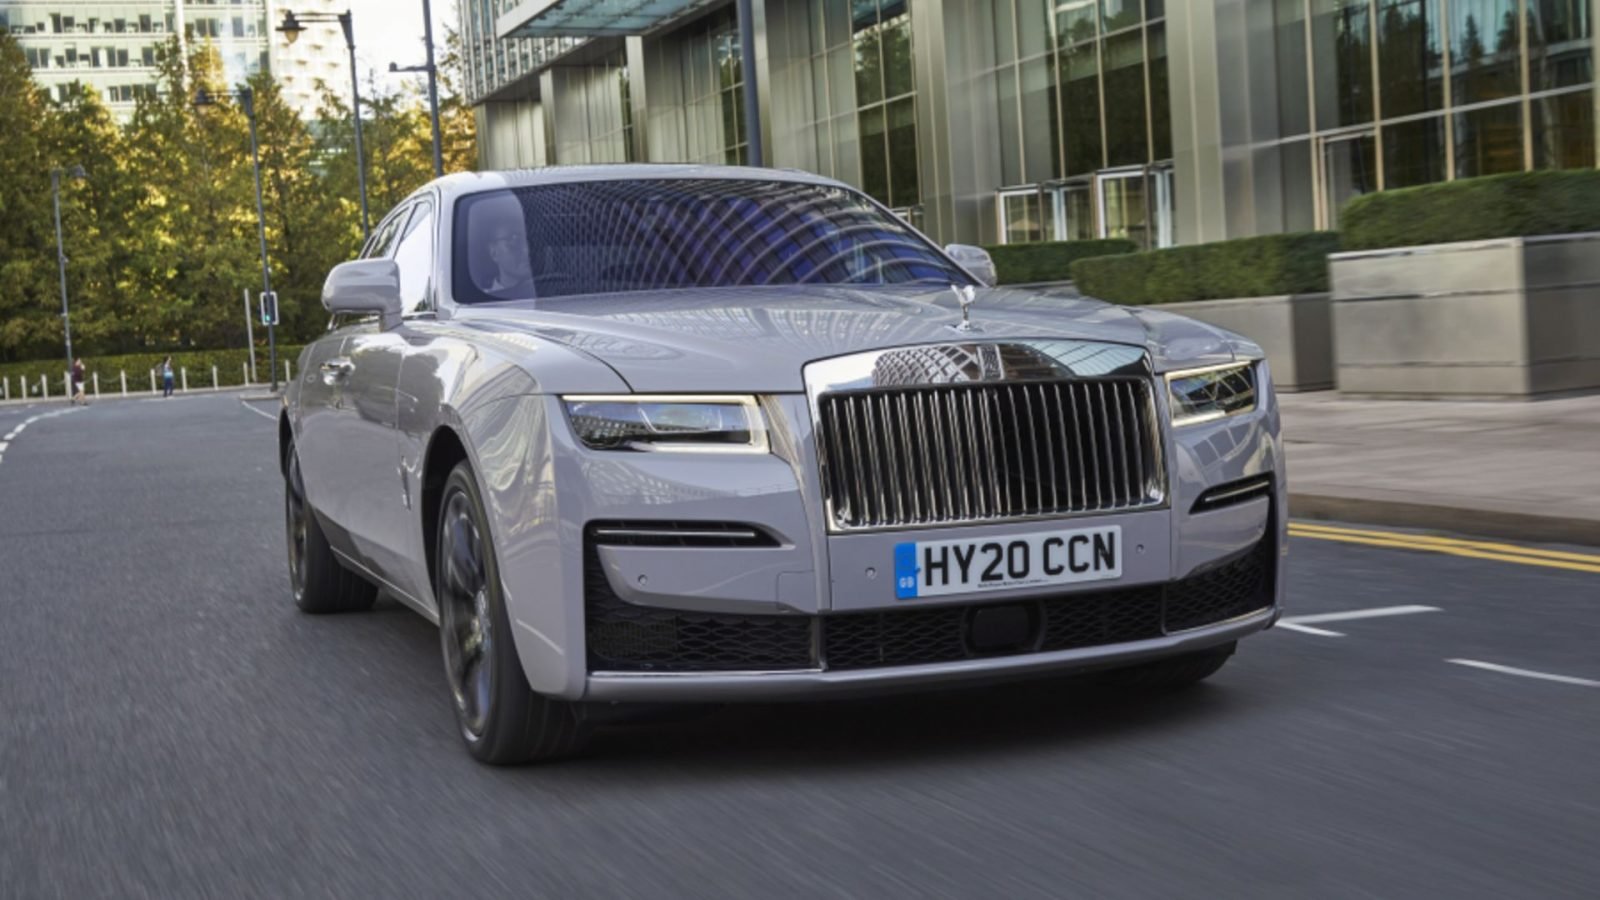 Reviving the golden era of car journalism in a new Rolls-Royce Ghost